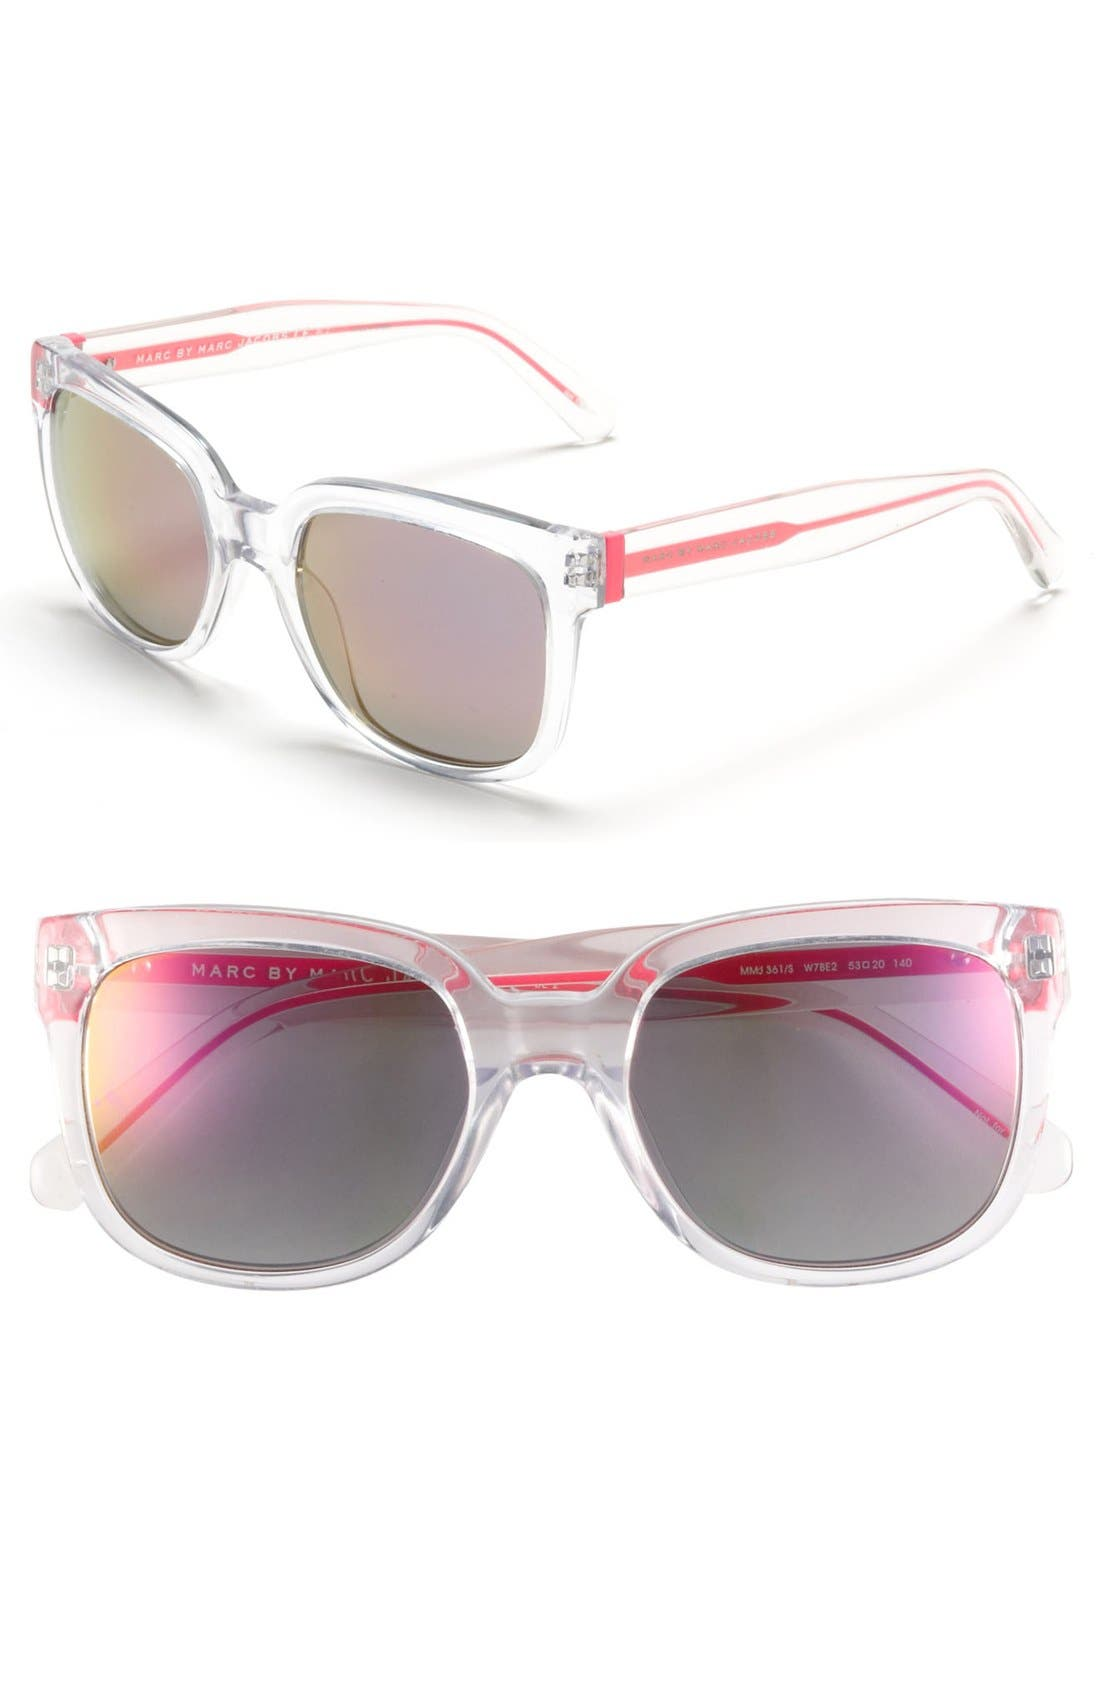 Alternate Image 1 Selected - MARC BY MARC JACOBS 53mm Retro Sunglasses